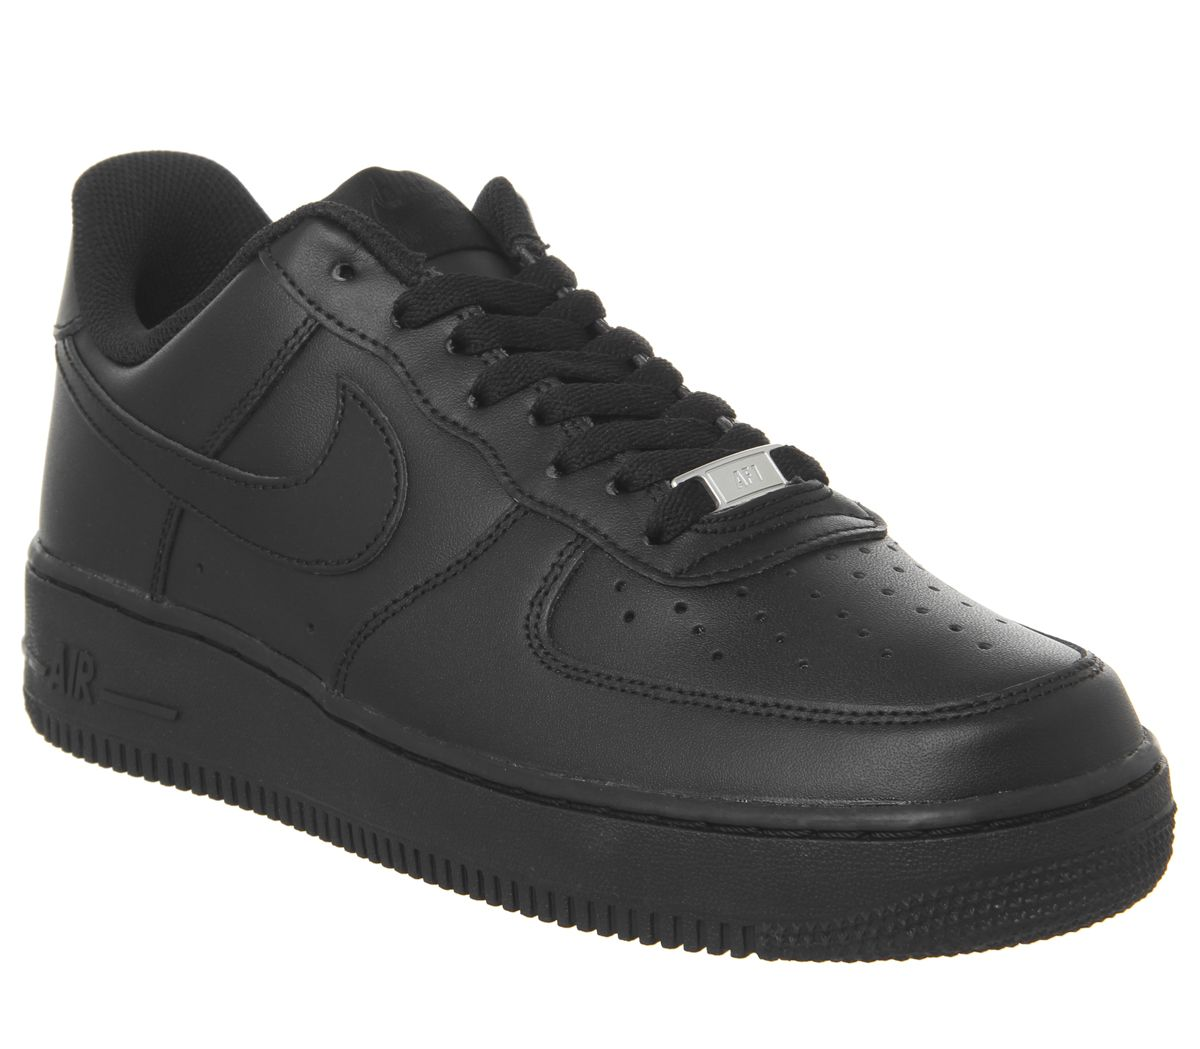 new concept af418 b9abb Nike Air Force 1 Trainers Black - His trainers